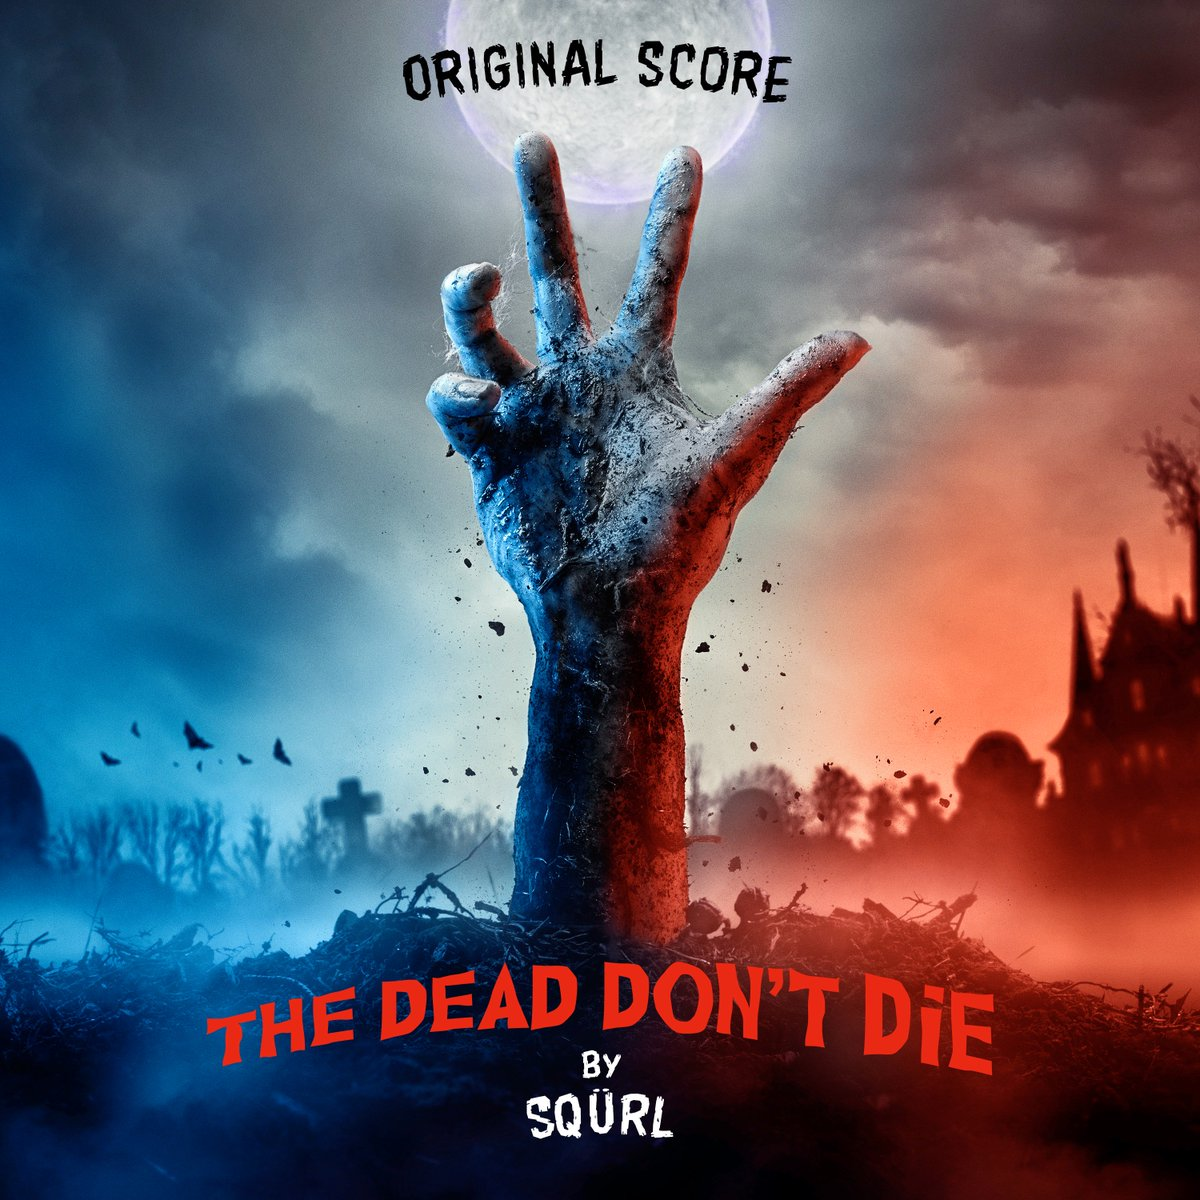 Get the score to #TheDeadDontDie featuring music by director Jim Jarmusch and producer Carter Logan (also known as SQÜRL) – out now! https://smarturl.it/TheDeadDontDie